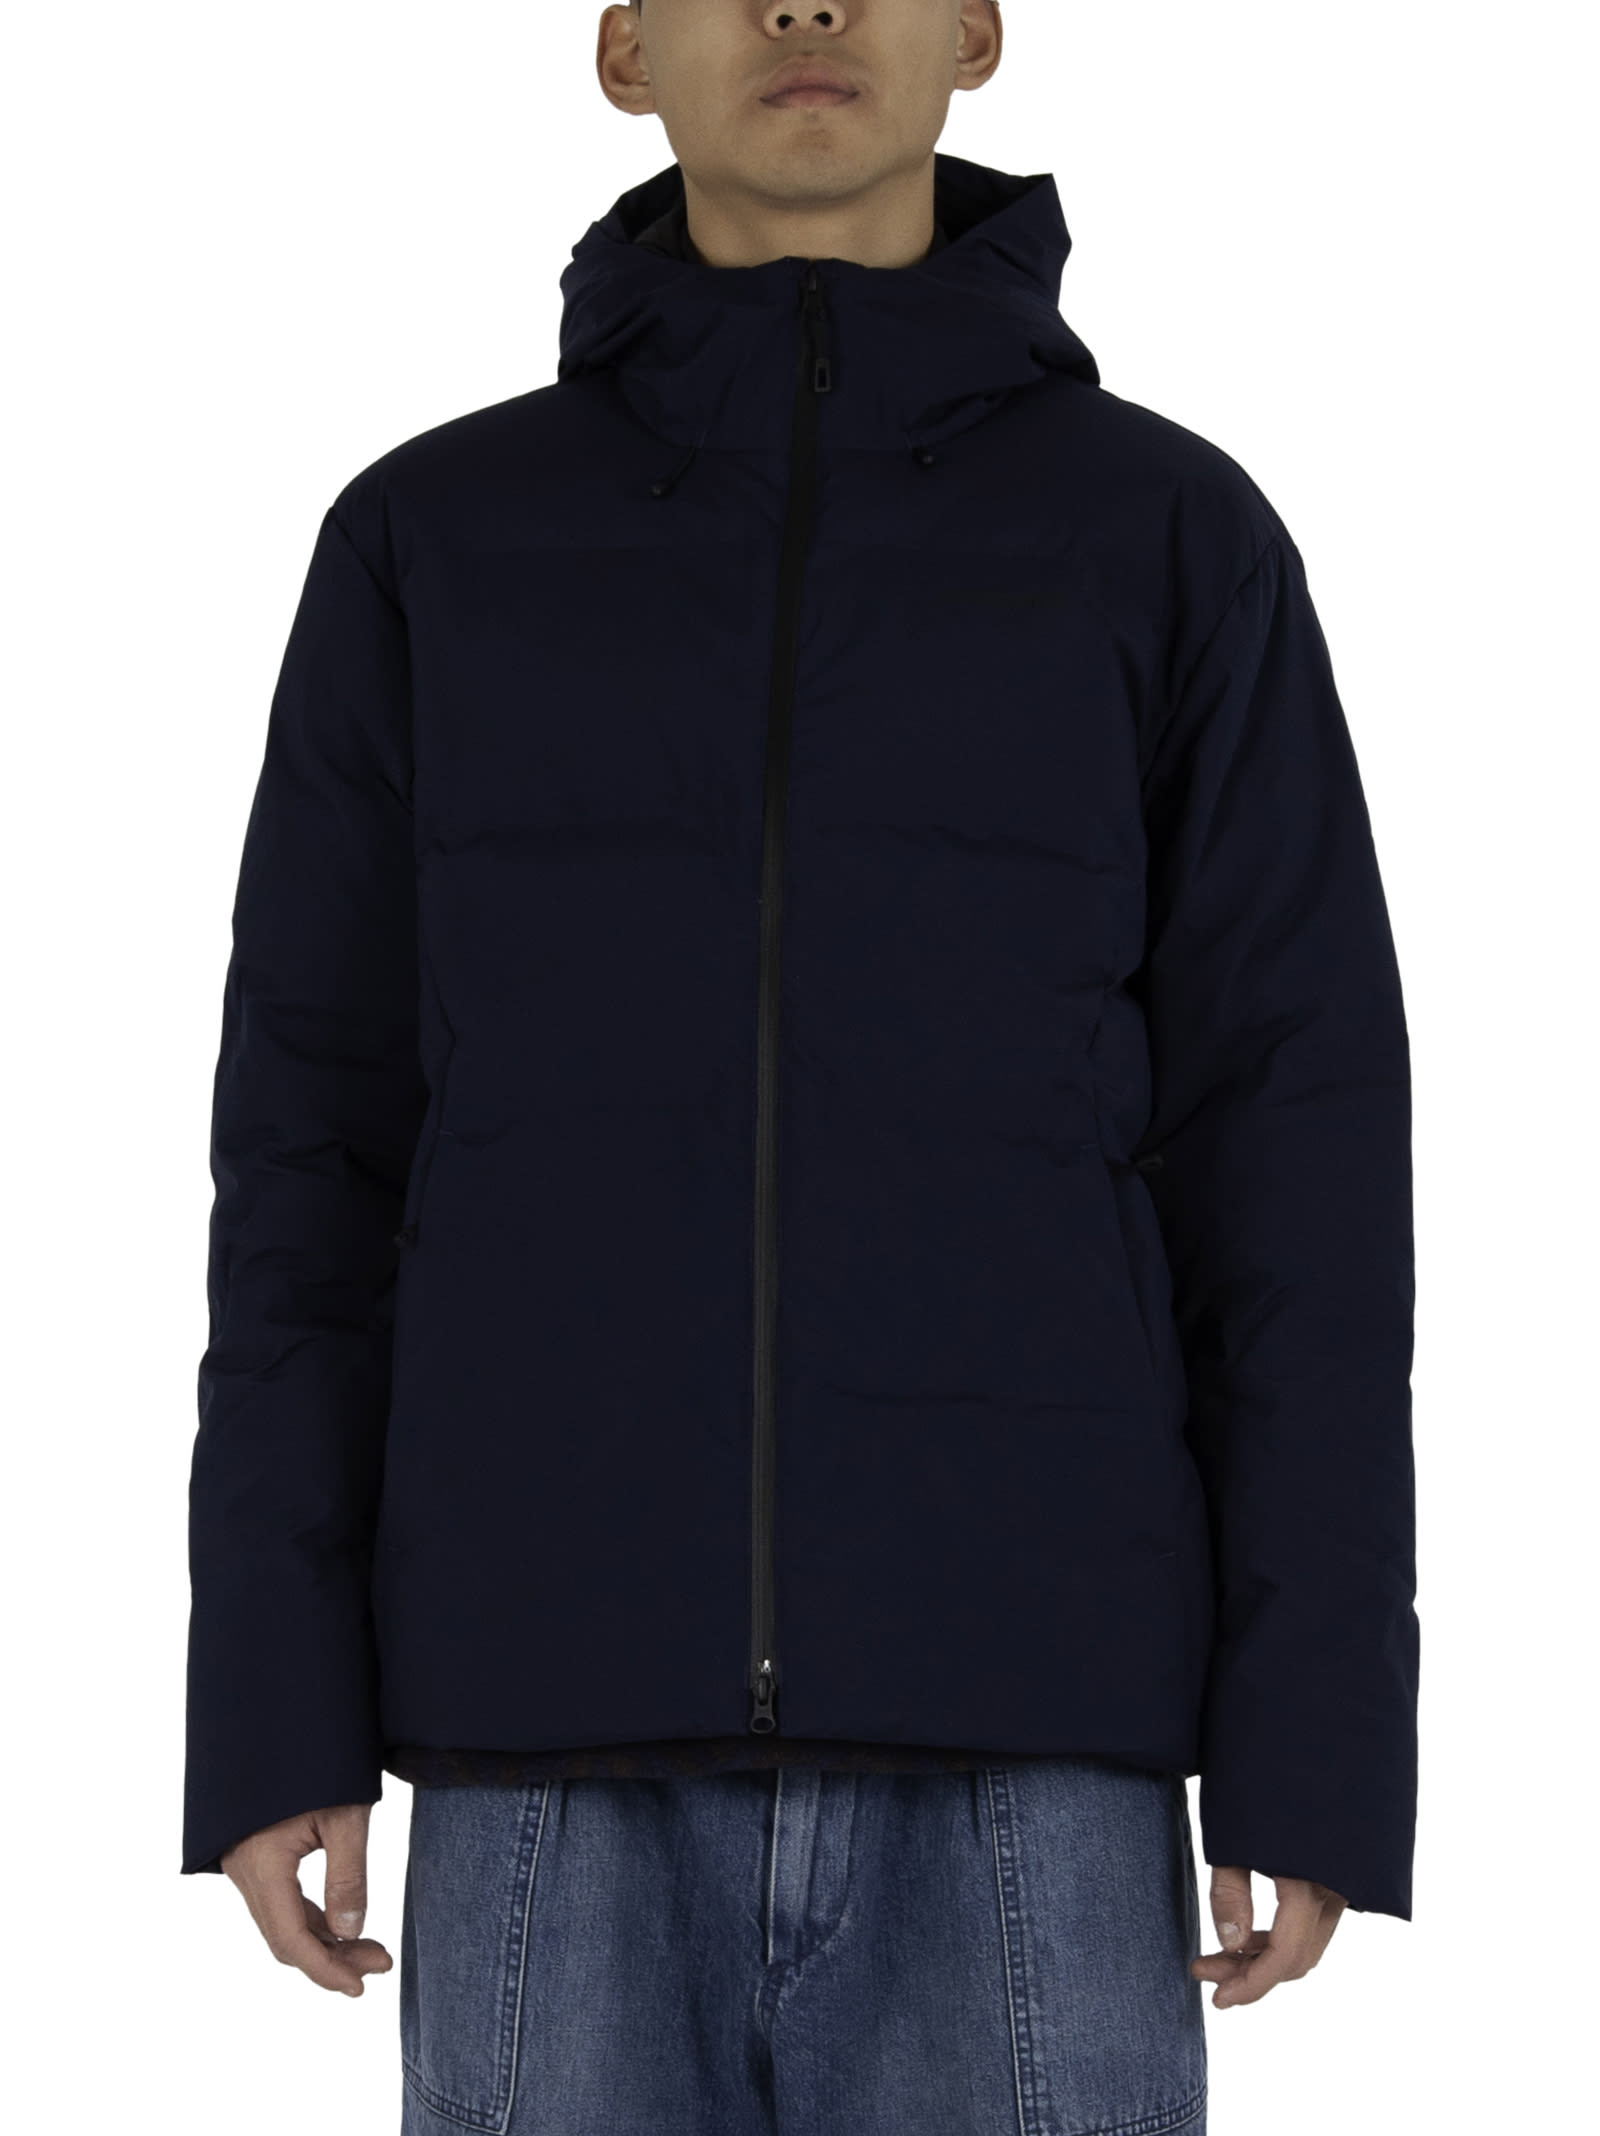 100% goose down and recycled duck; - Zipper closure; - Logo printed on chest; - Inside pocket; - Side pockets; - Adjustable hood and bottom. - Composition: 100% Recycled polyester - Color: Navy